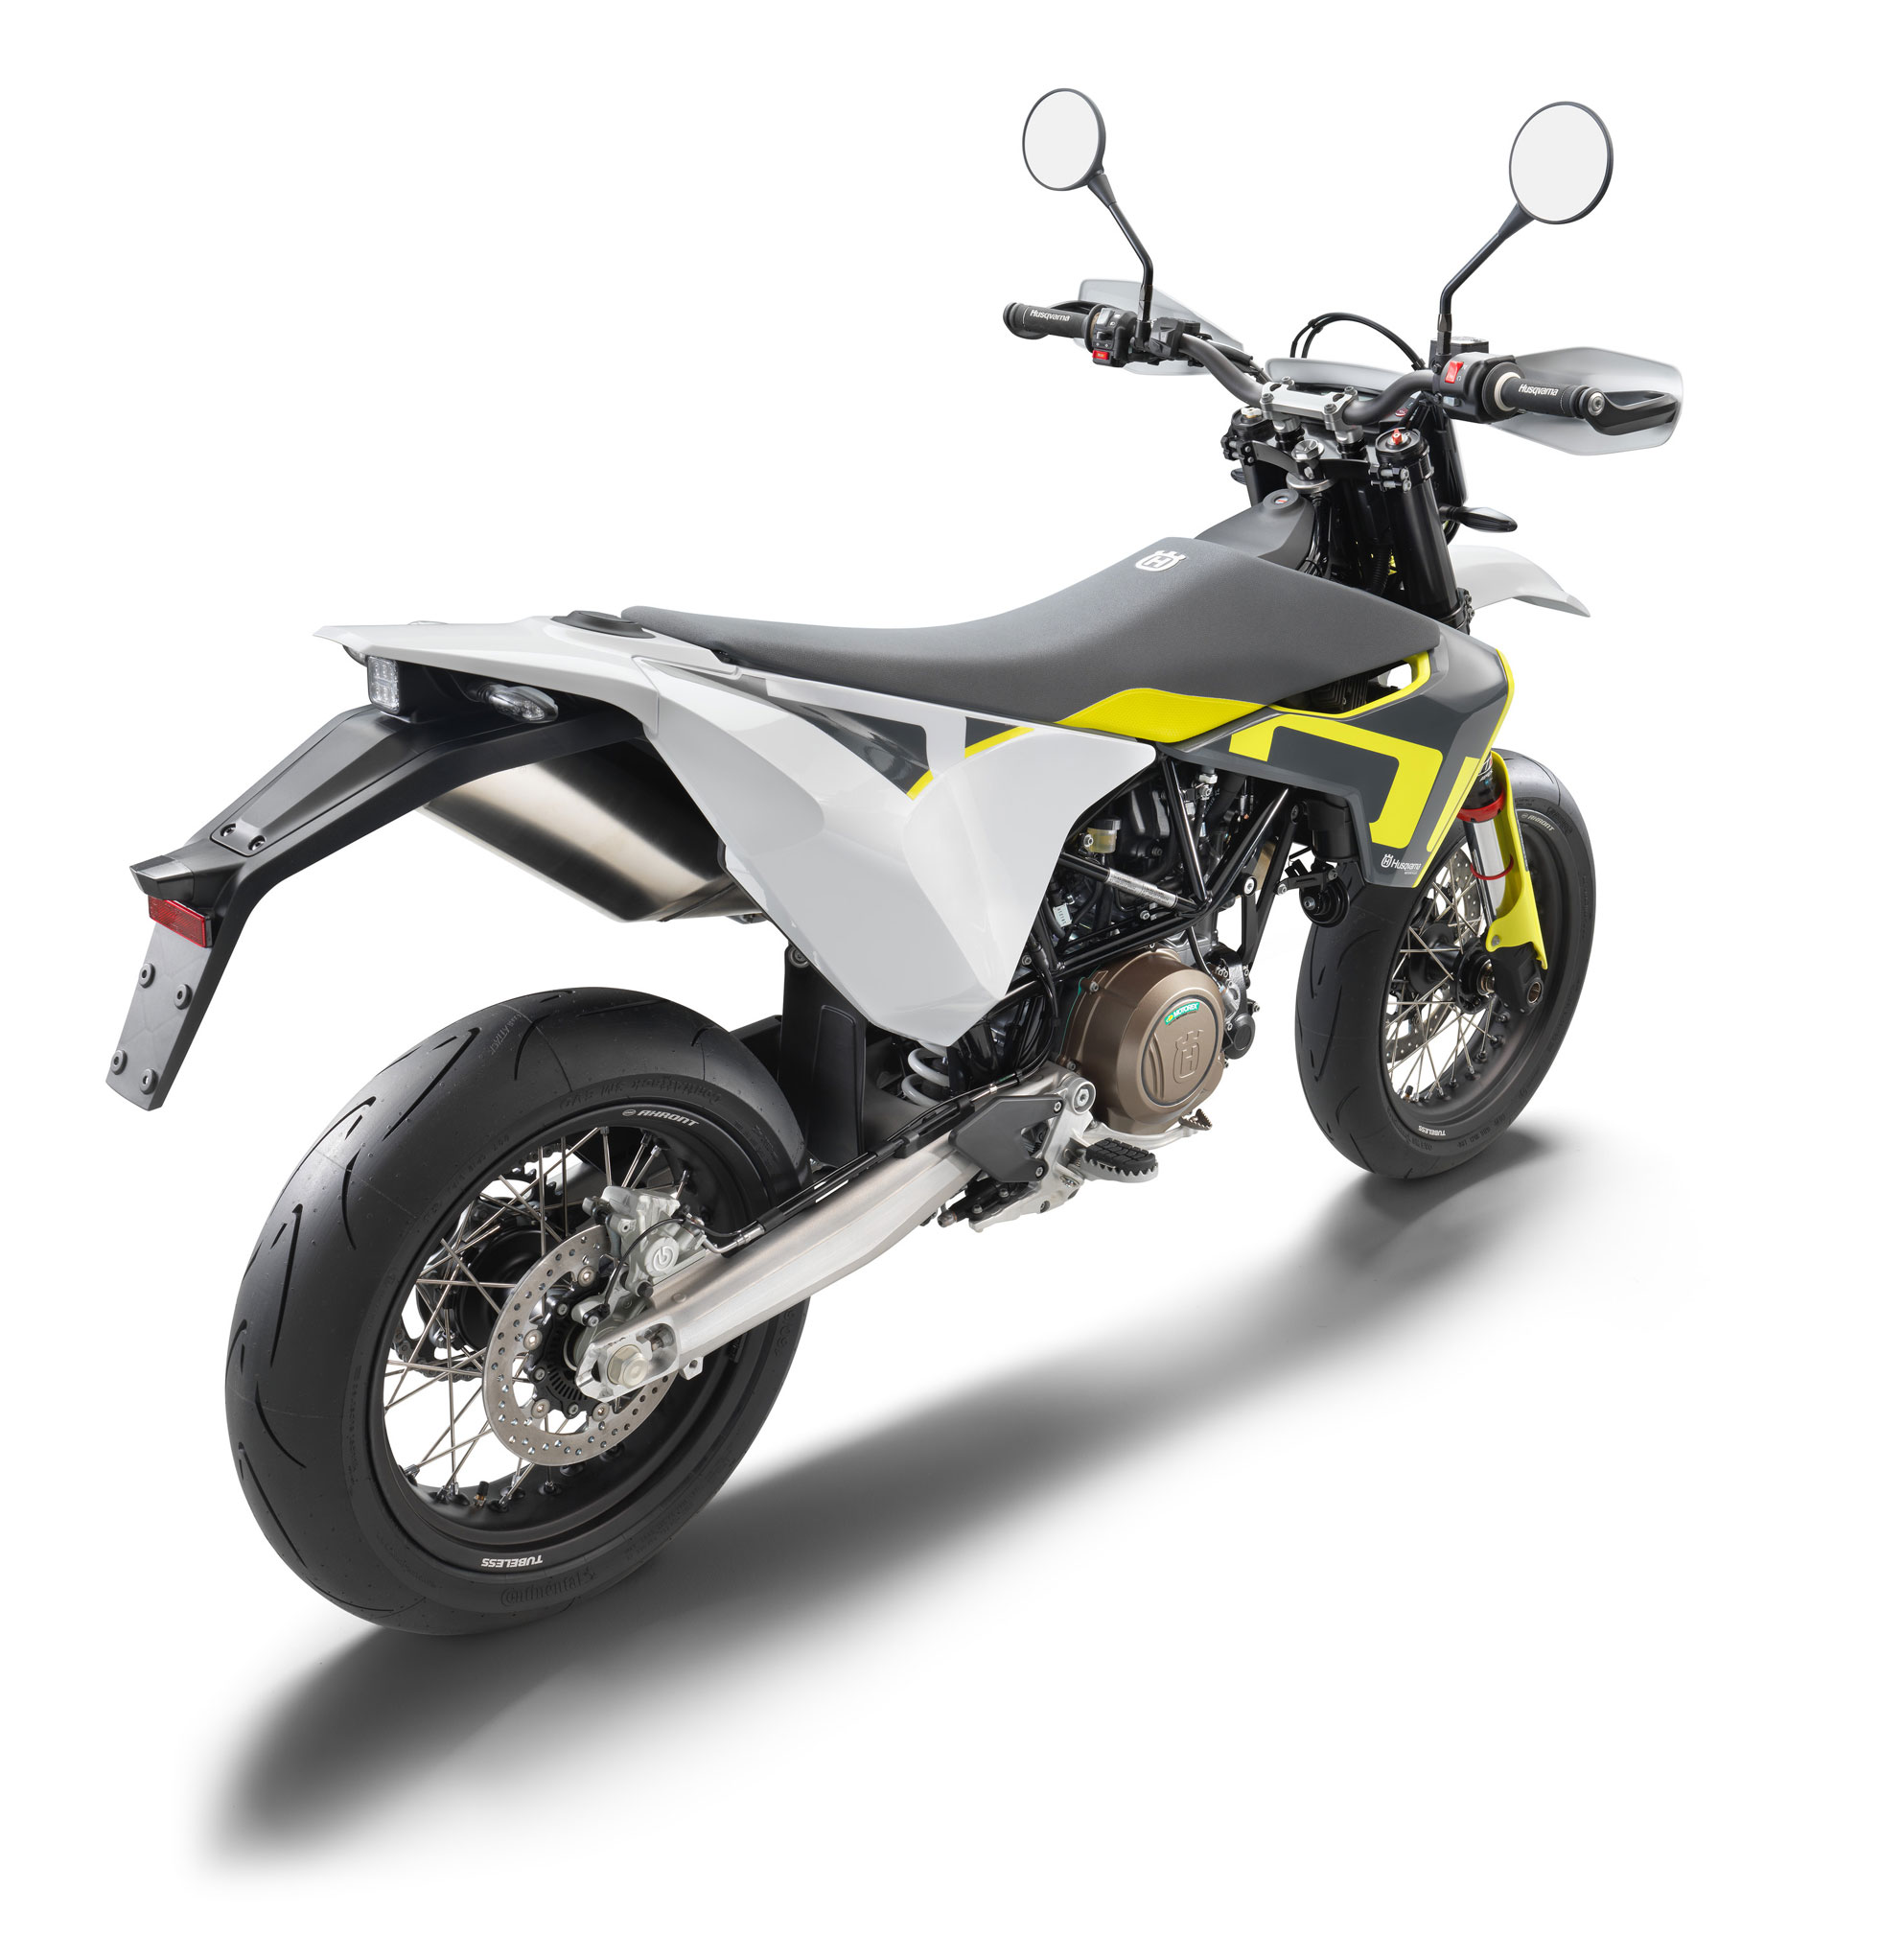 2020 Husqvarna 701 Supermoto Guide Total Motorcycle